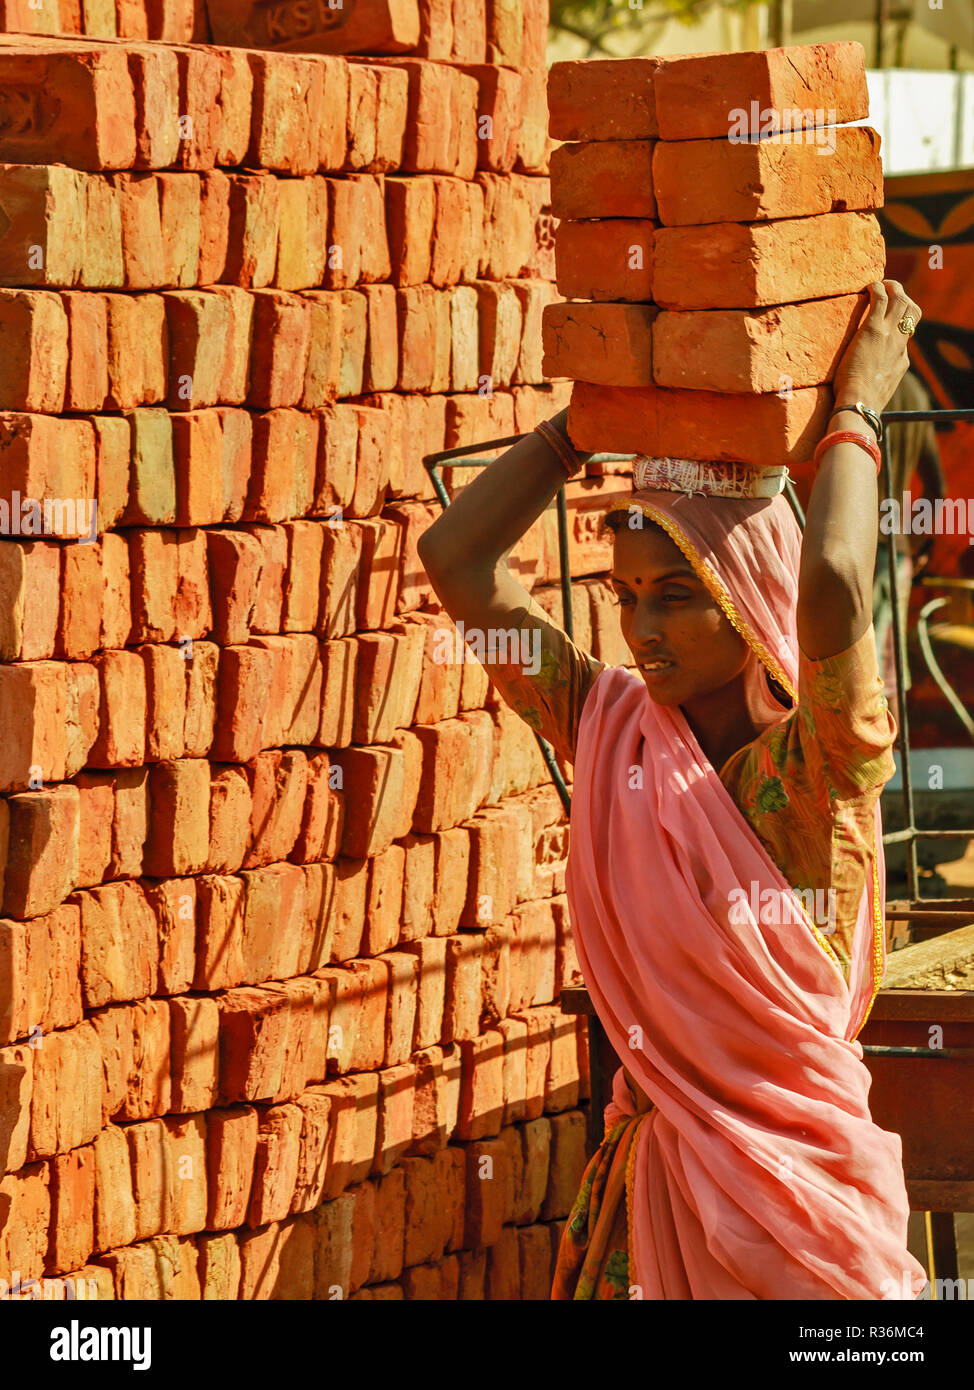 RAJASTHAN INDIA  YOUNG WOMAN CARRYING A LOAD OF HOUSE BRICKS ON HER HEAD - Stock Image